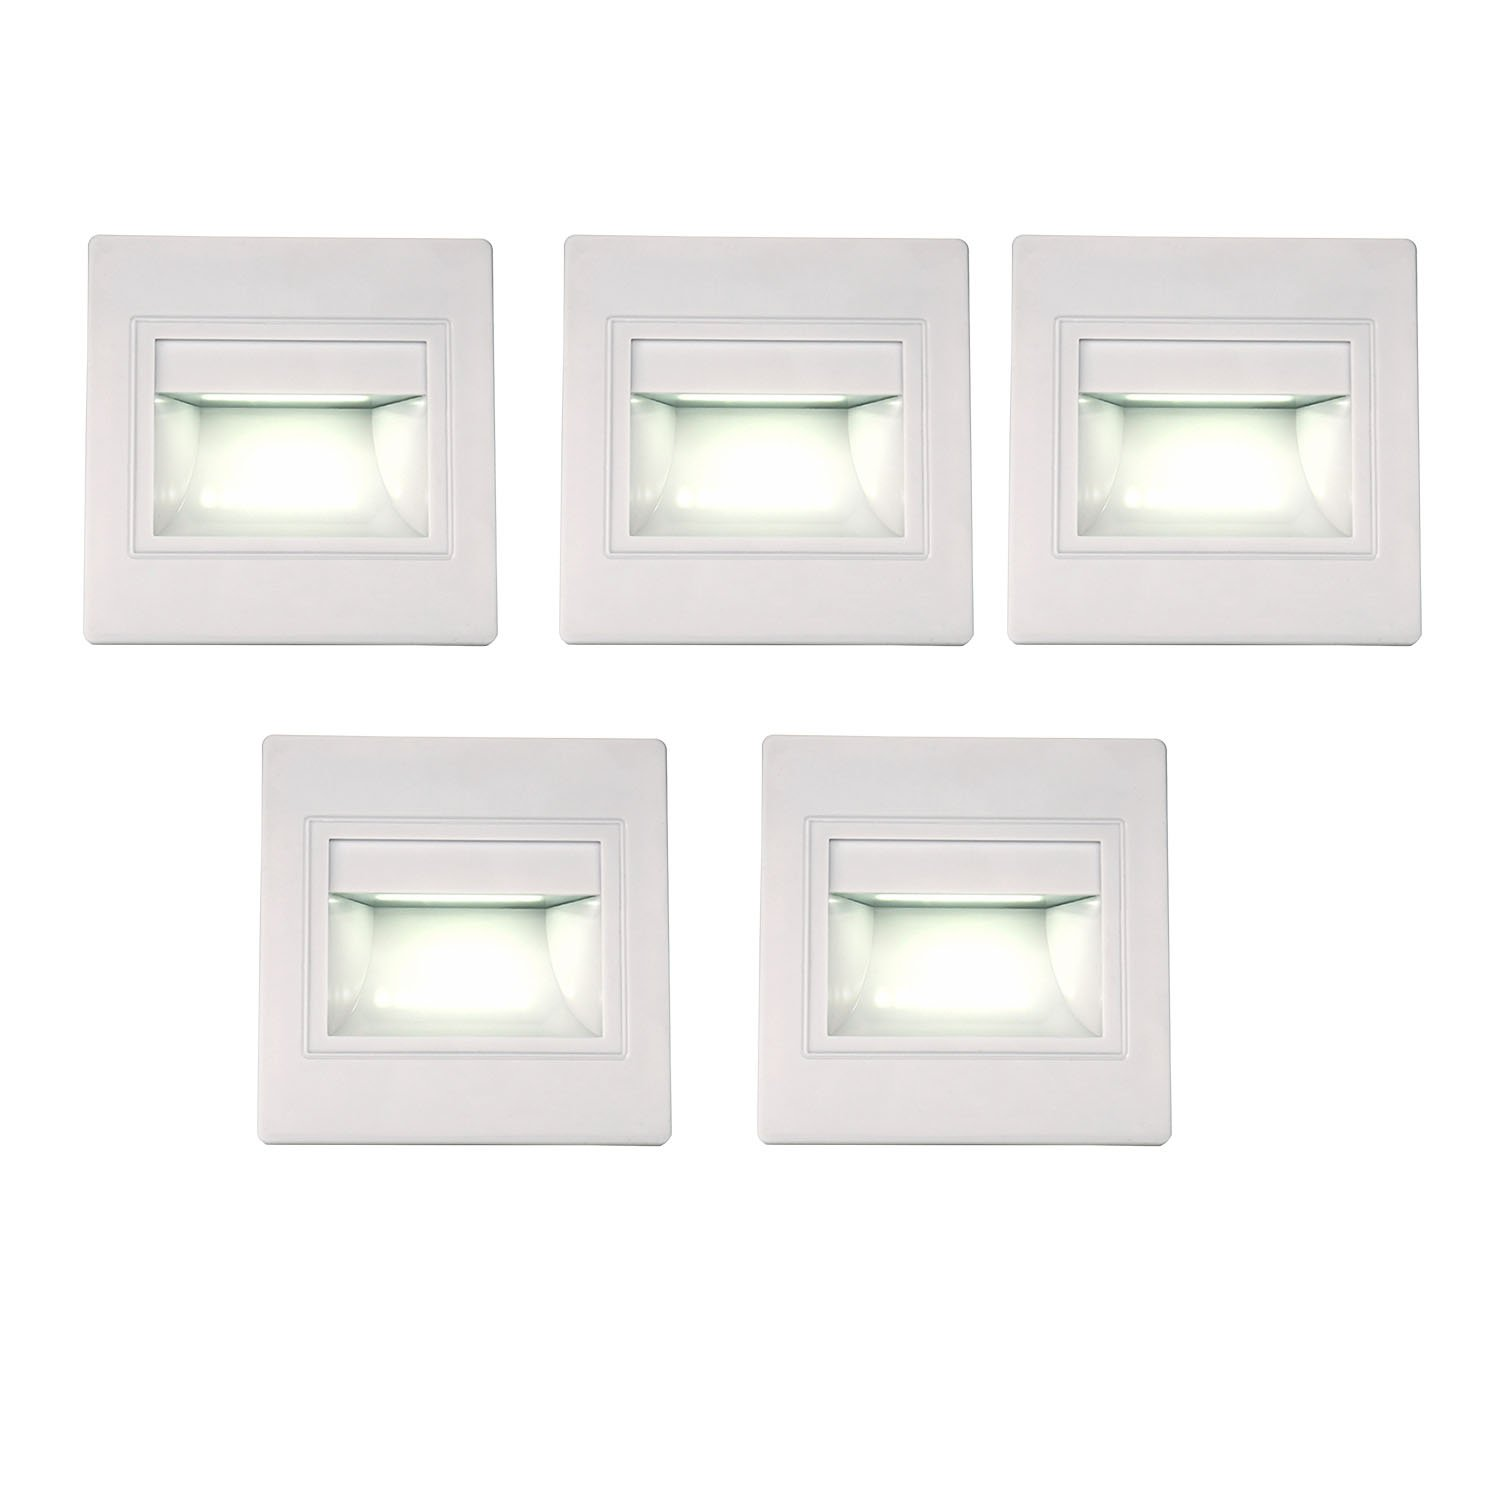 BOLXZHU 5-Pack LED Recessed Stair Light, LED Corner Wall Lamp 85-265V, Embedded LED Stairs Step Night Lighting for Hallway, Stairs, Closet, Bedroom White 6000K